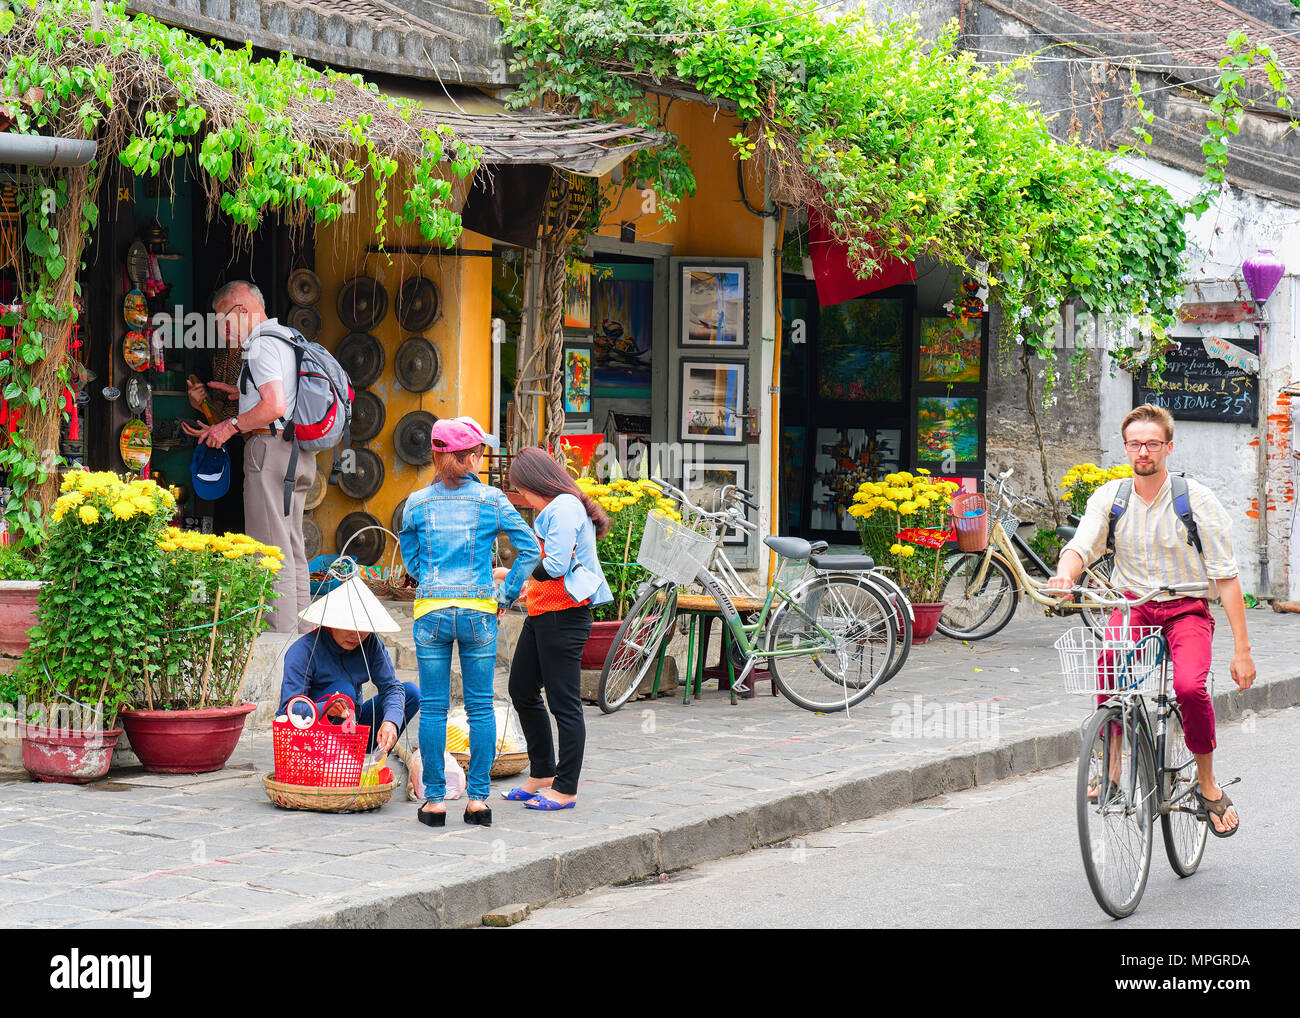 Hoi An, Vietnam - February 17, 2016: Man on bicycle at the street of old city of Hoi An, Vietnam Stock Photo